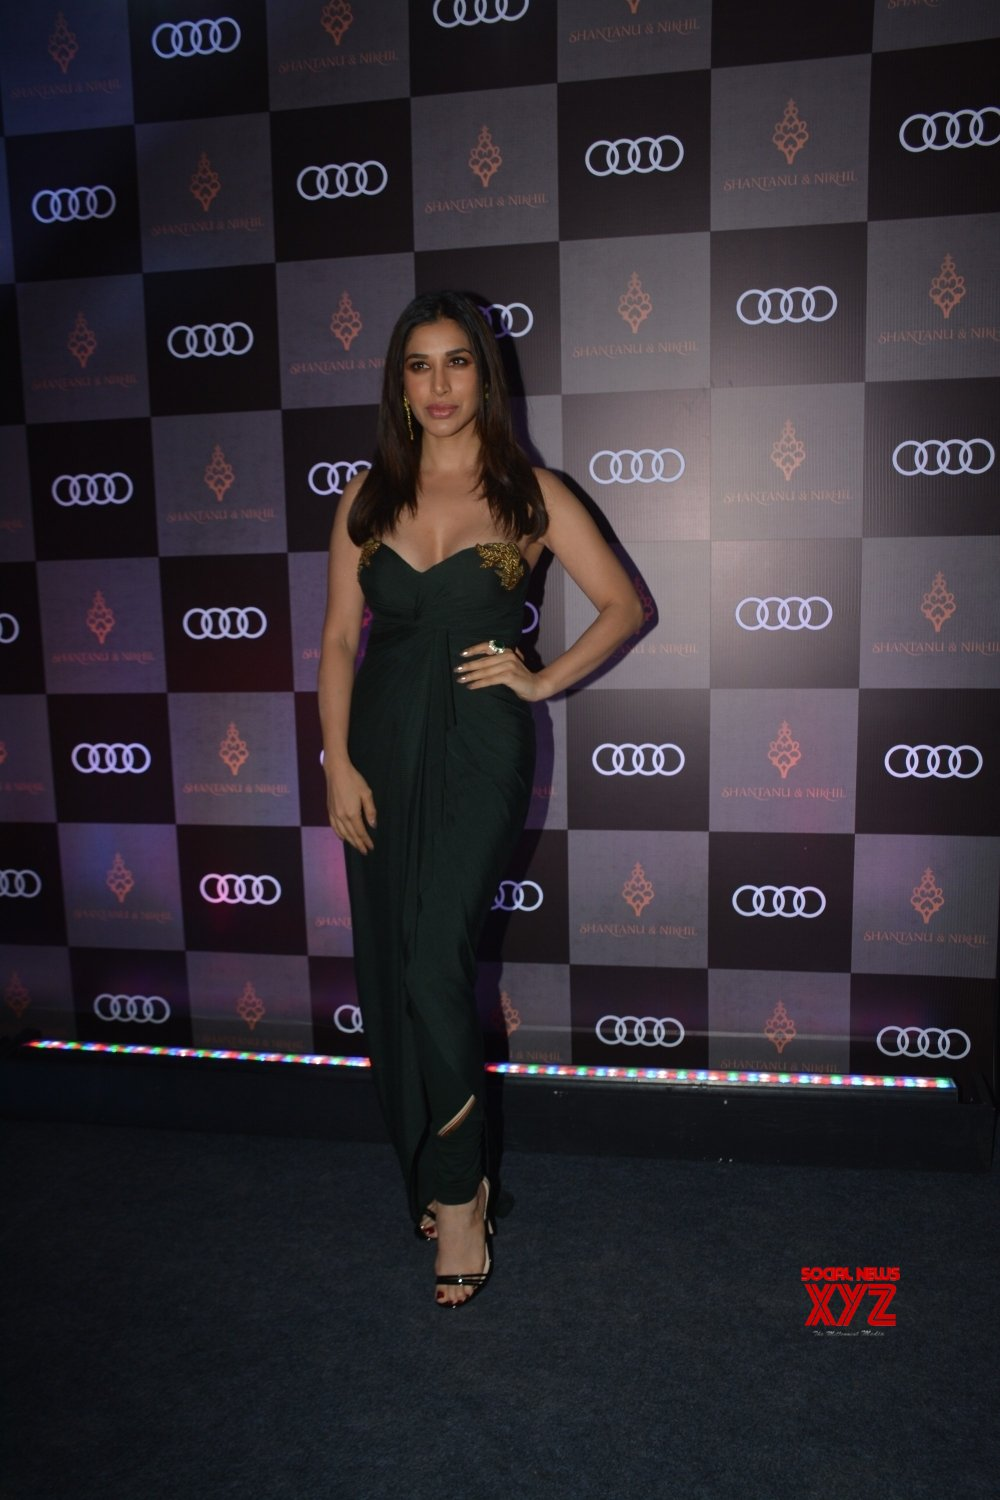 Mumbai: Shantanu and Nikhil's store launch - Sophie Choudry #Gallery